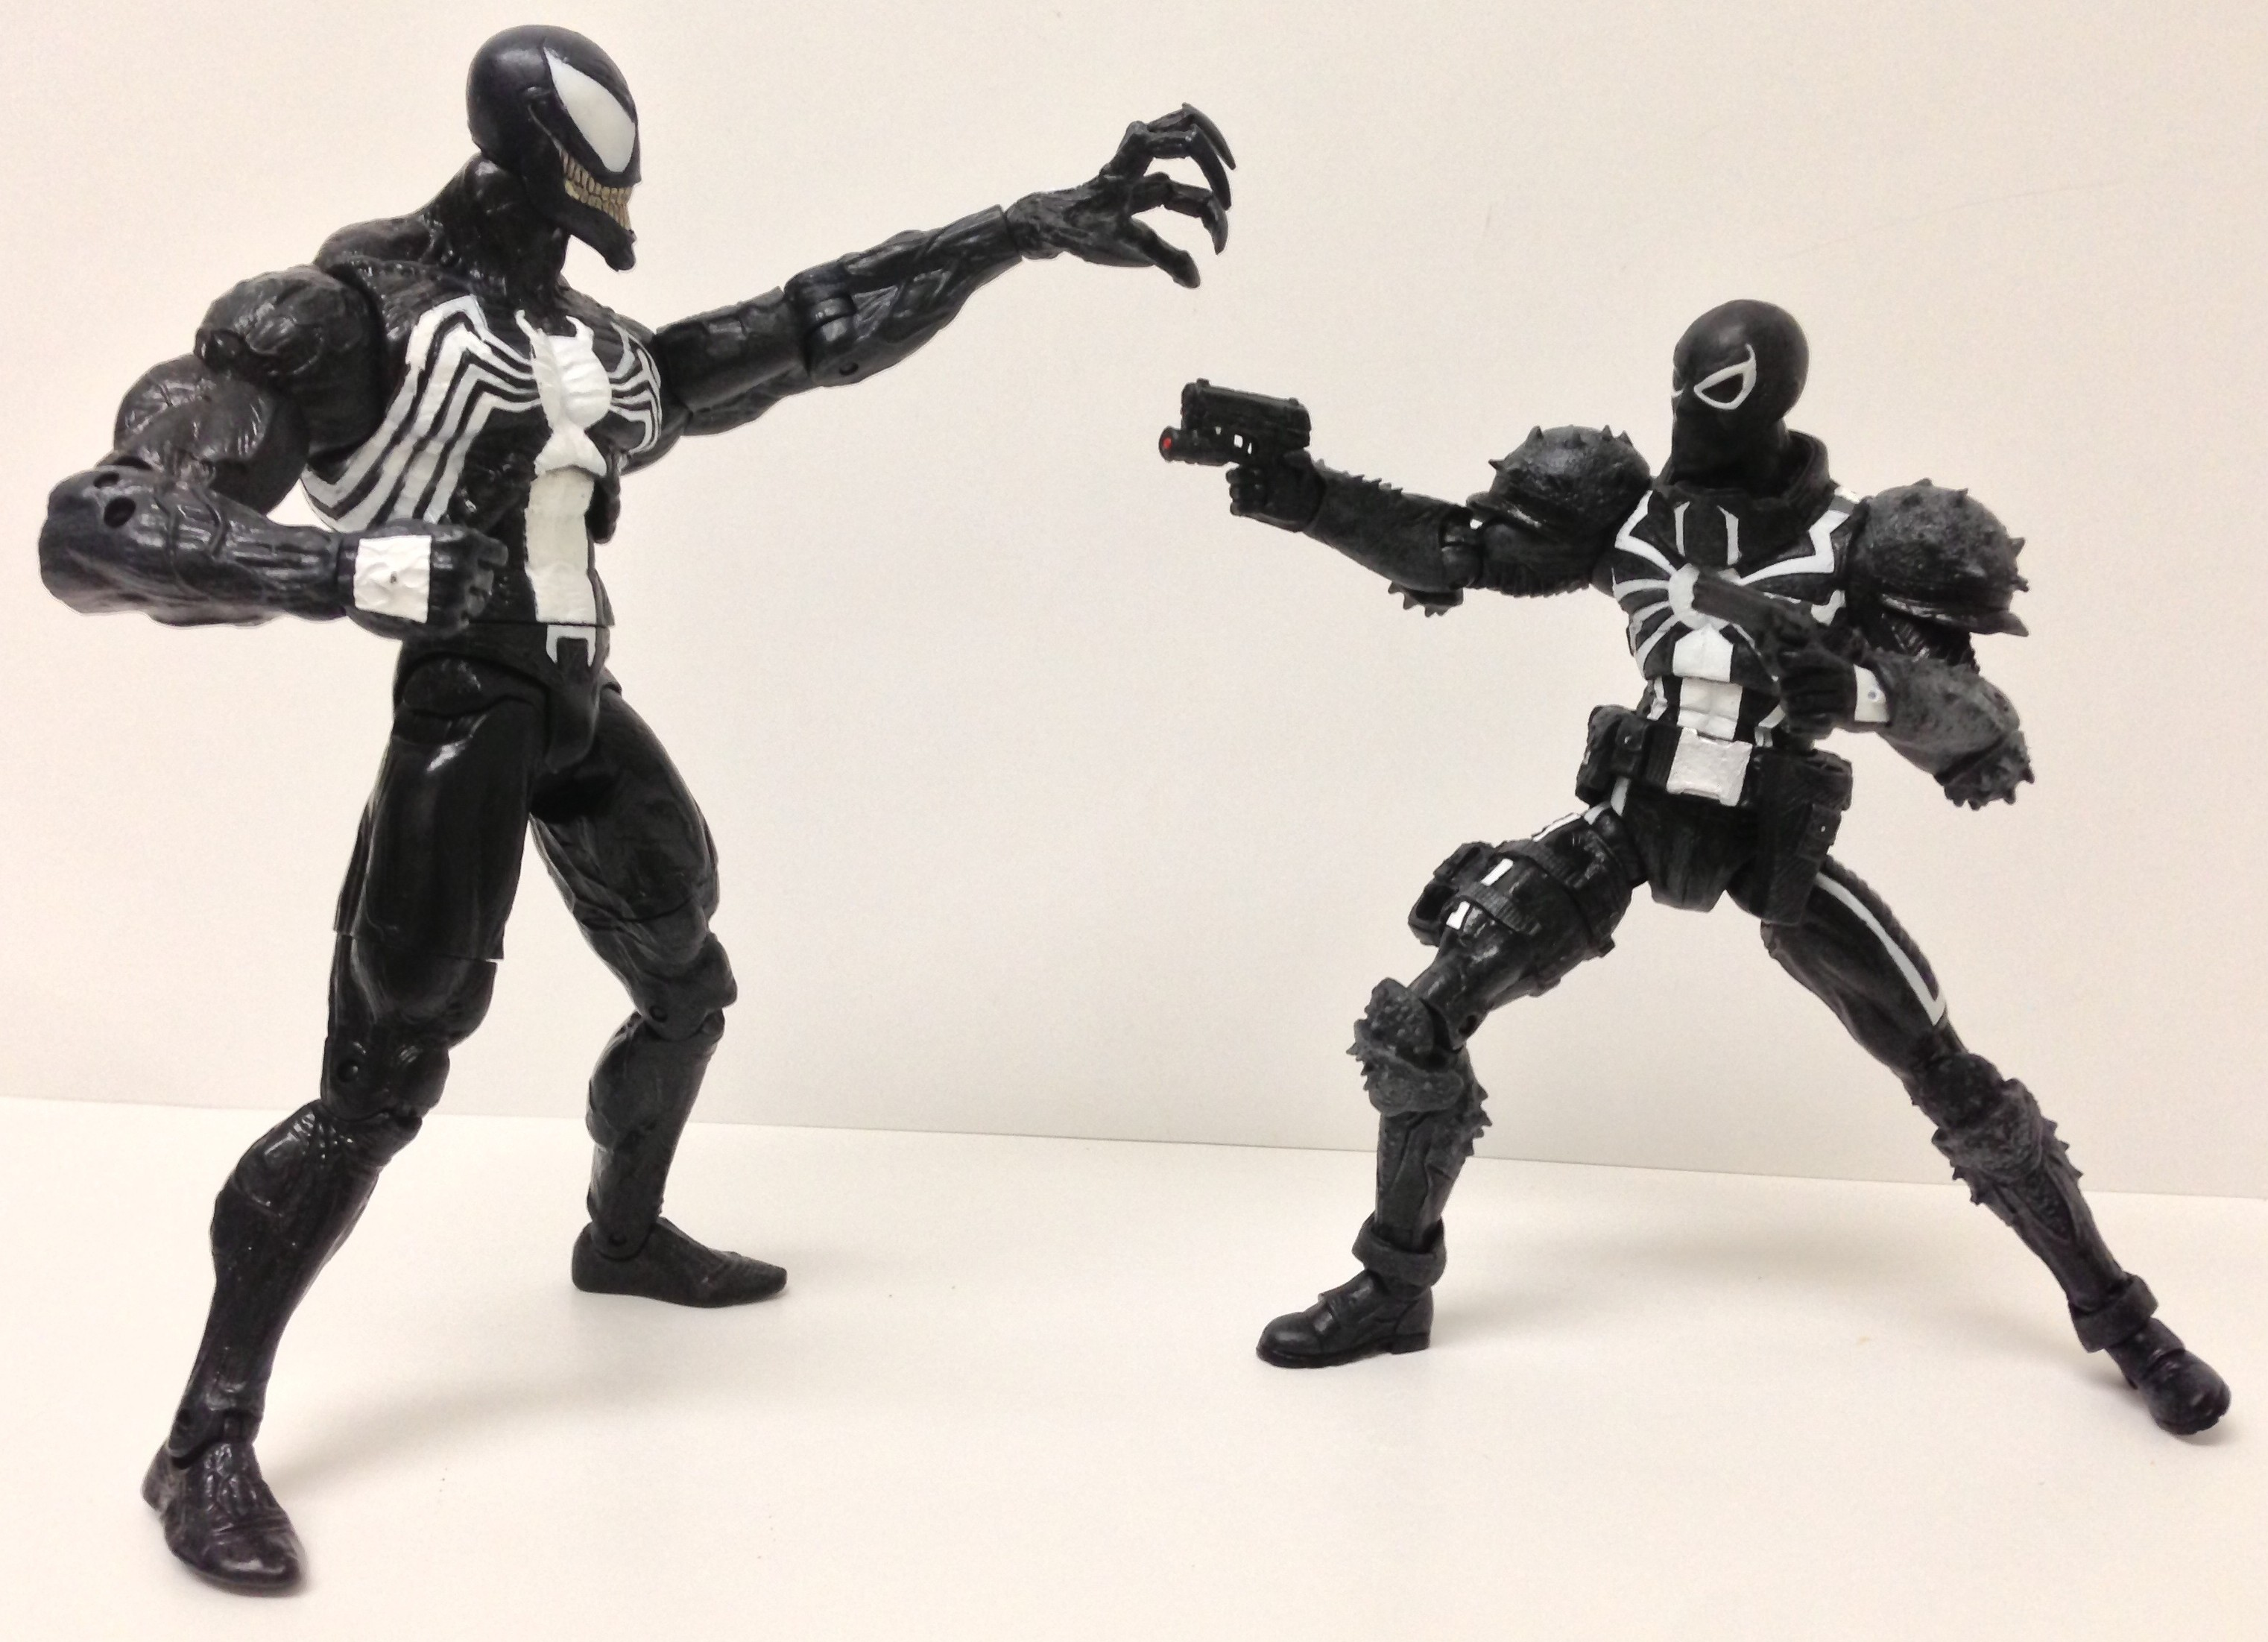 Marvel Select Venom vs. Modern Venom Action Figures